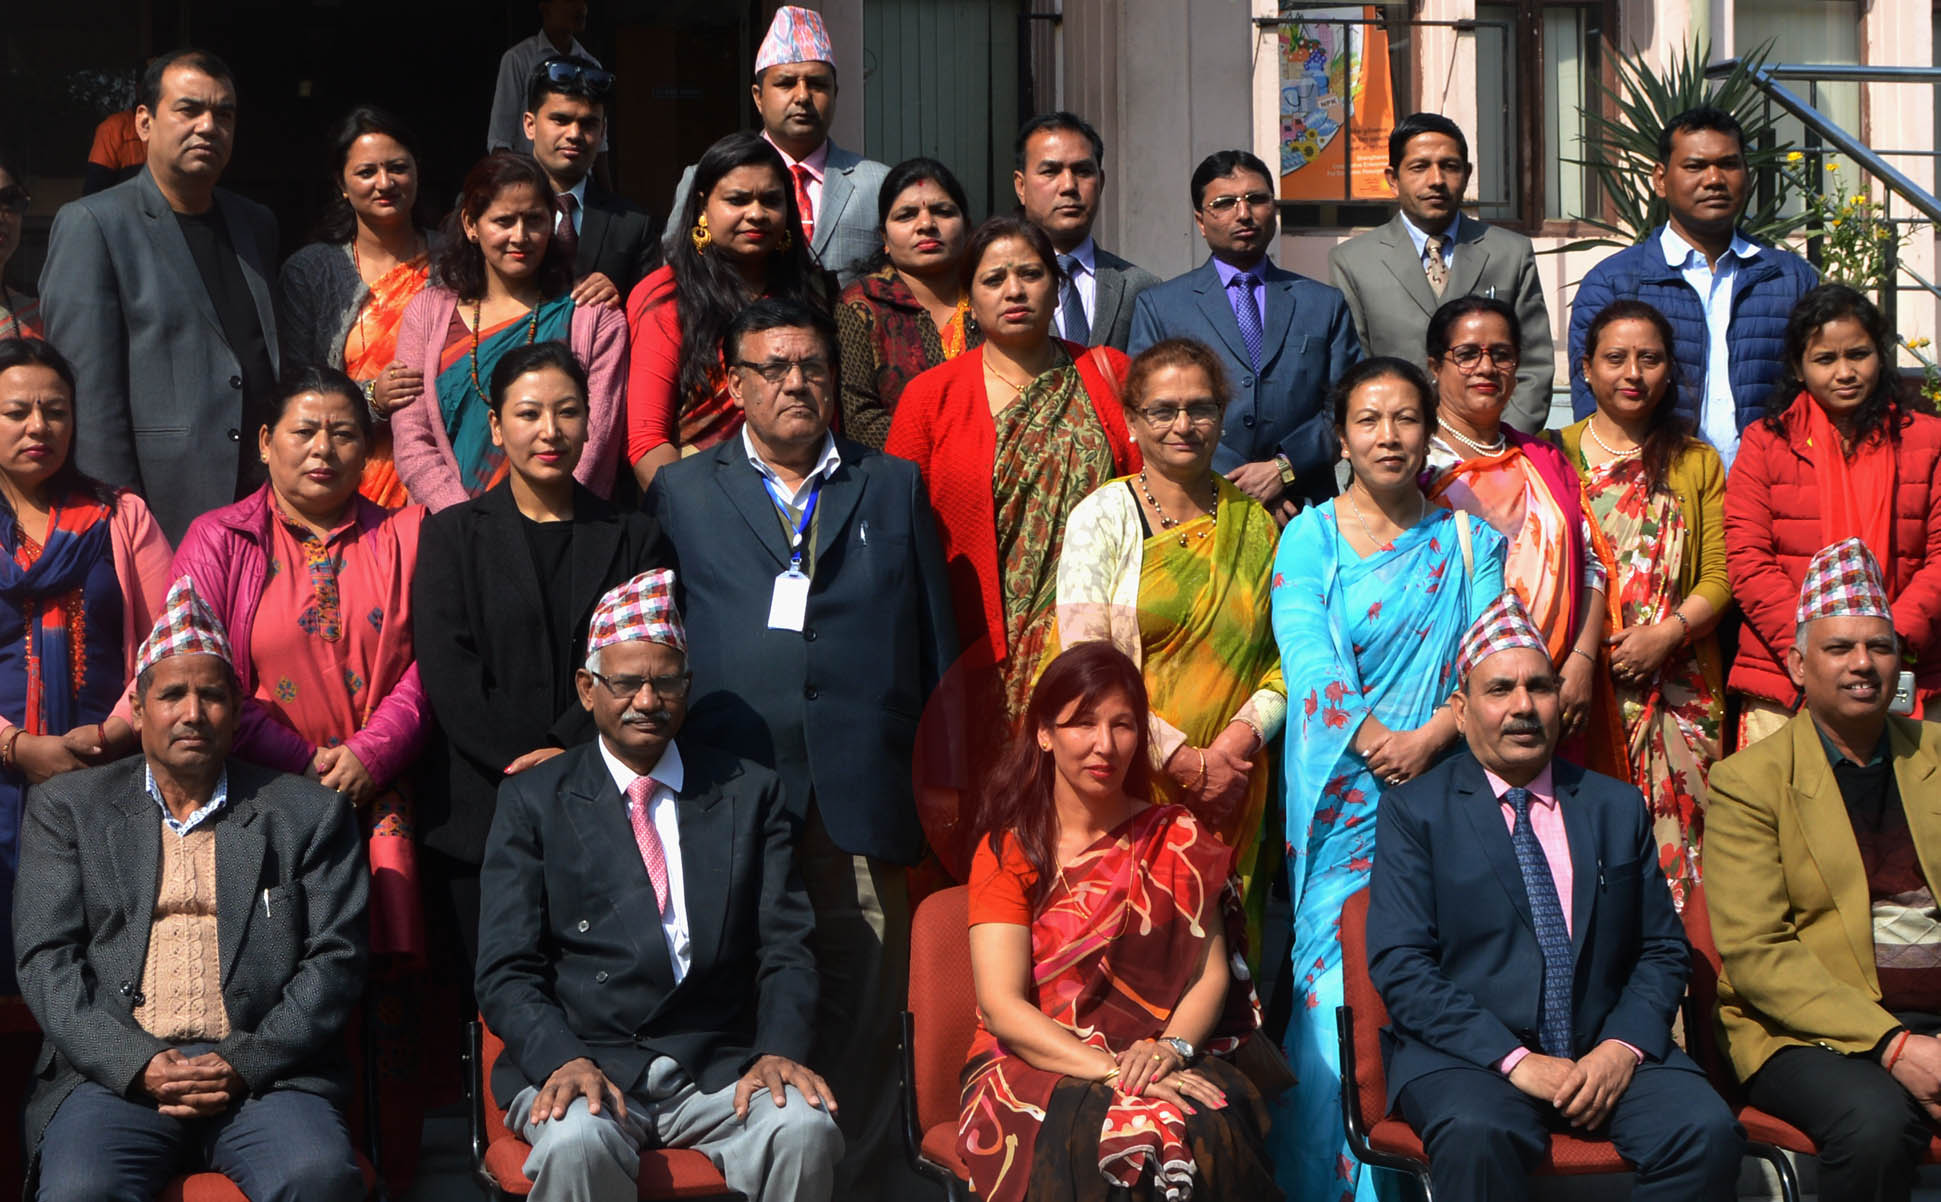 51% of Nepalese women are active in co-ops: Sakya